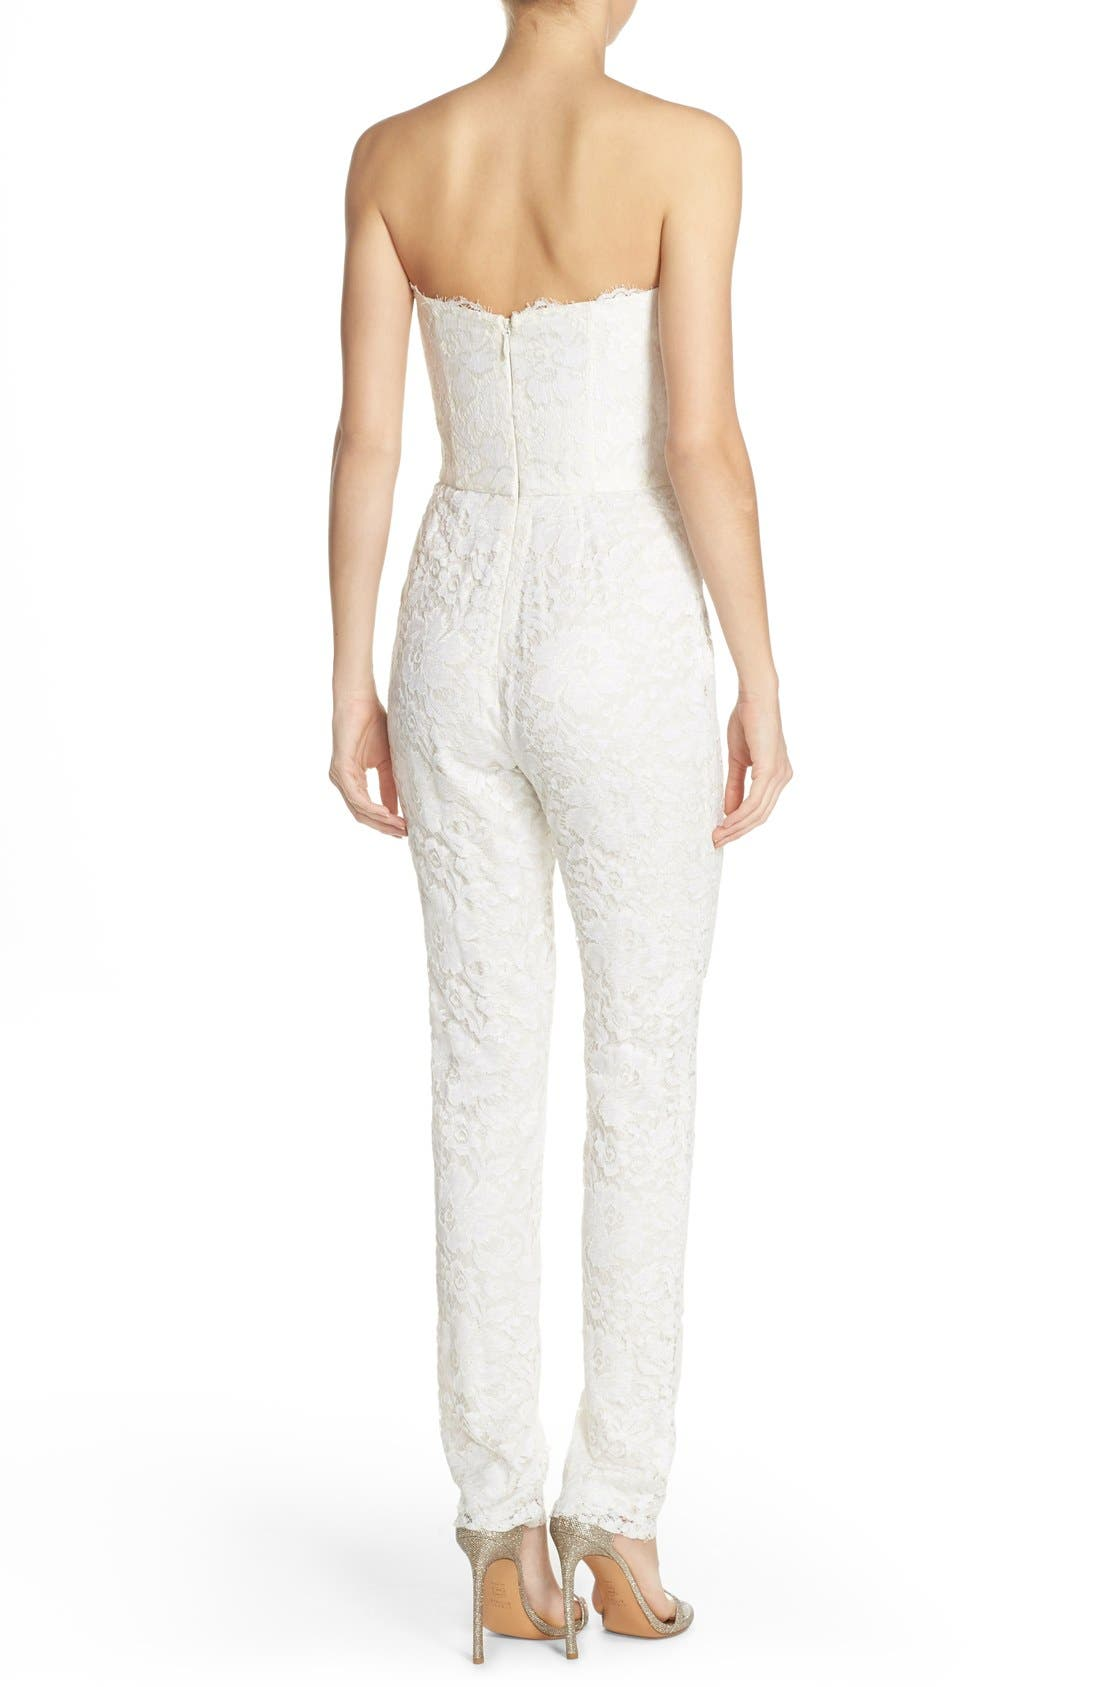 Monique Lhuillier Ready to Wed Strapless Chantilly Lace Jumpsuit,                             Alternate thumbnail 2, color,                             Silk White